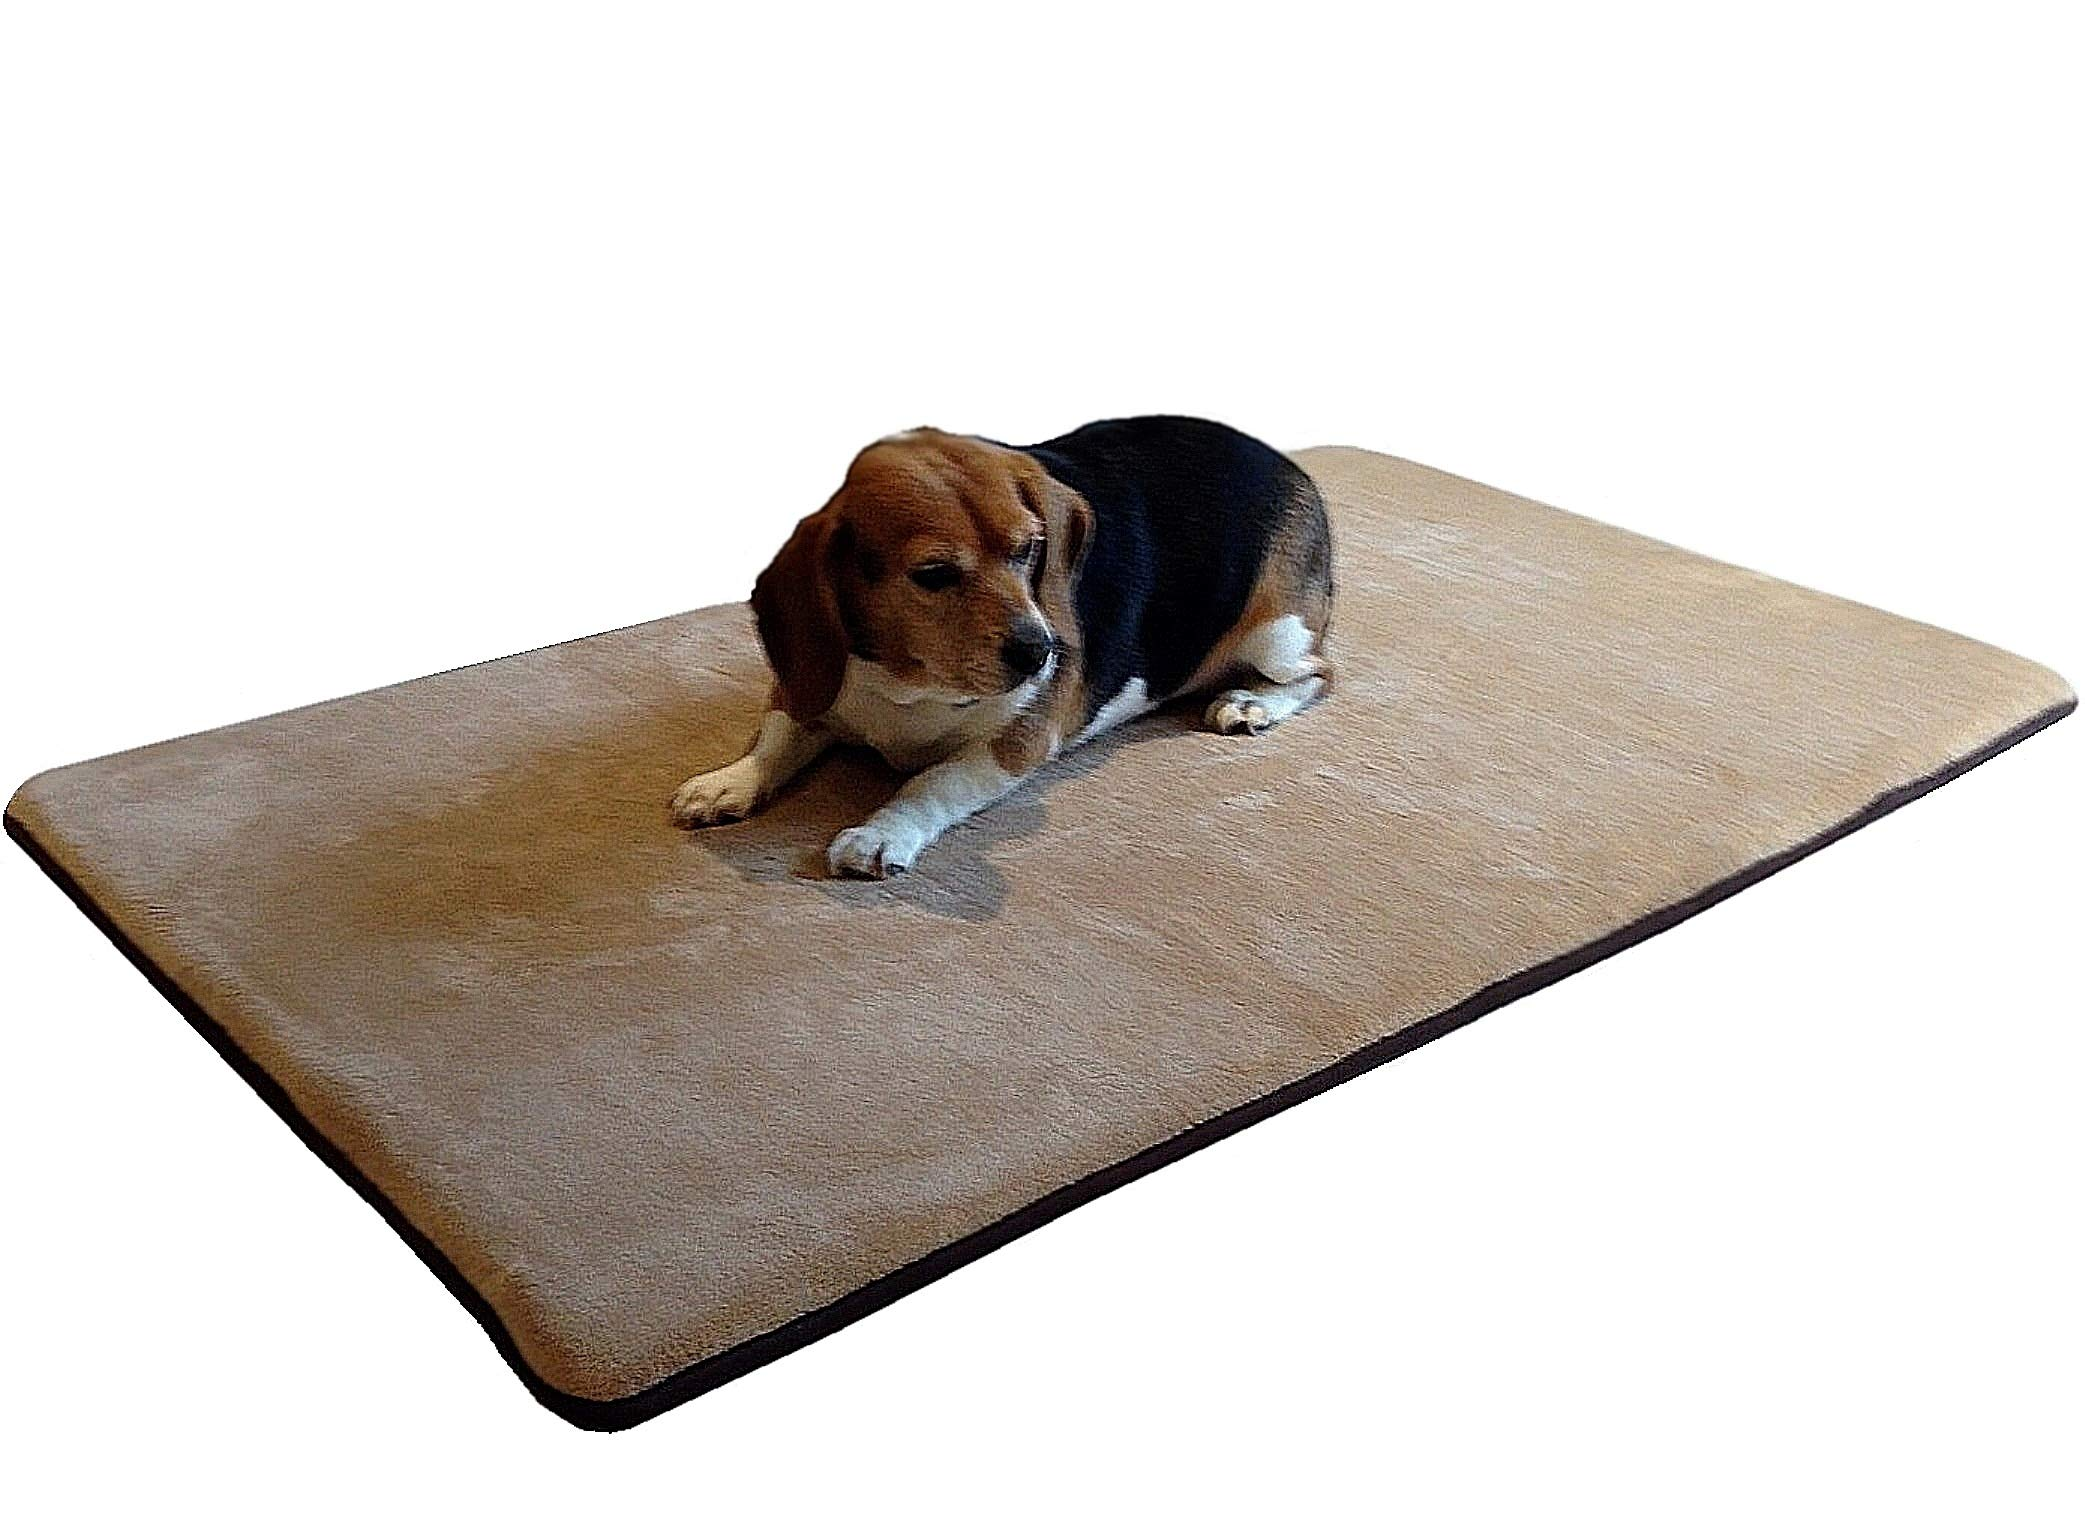 Dogbed4less Jumbo Memory Foam Pet Dog Bed Mat Pillow Mattress Topper 75''X38'' Super Large Twin Size for Extra Large Pet - Beige